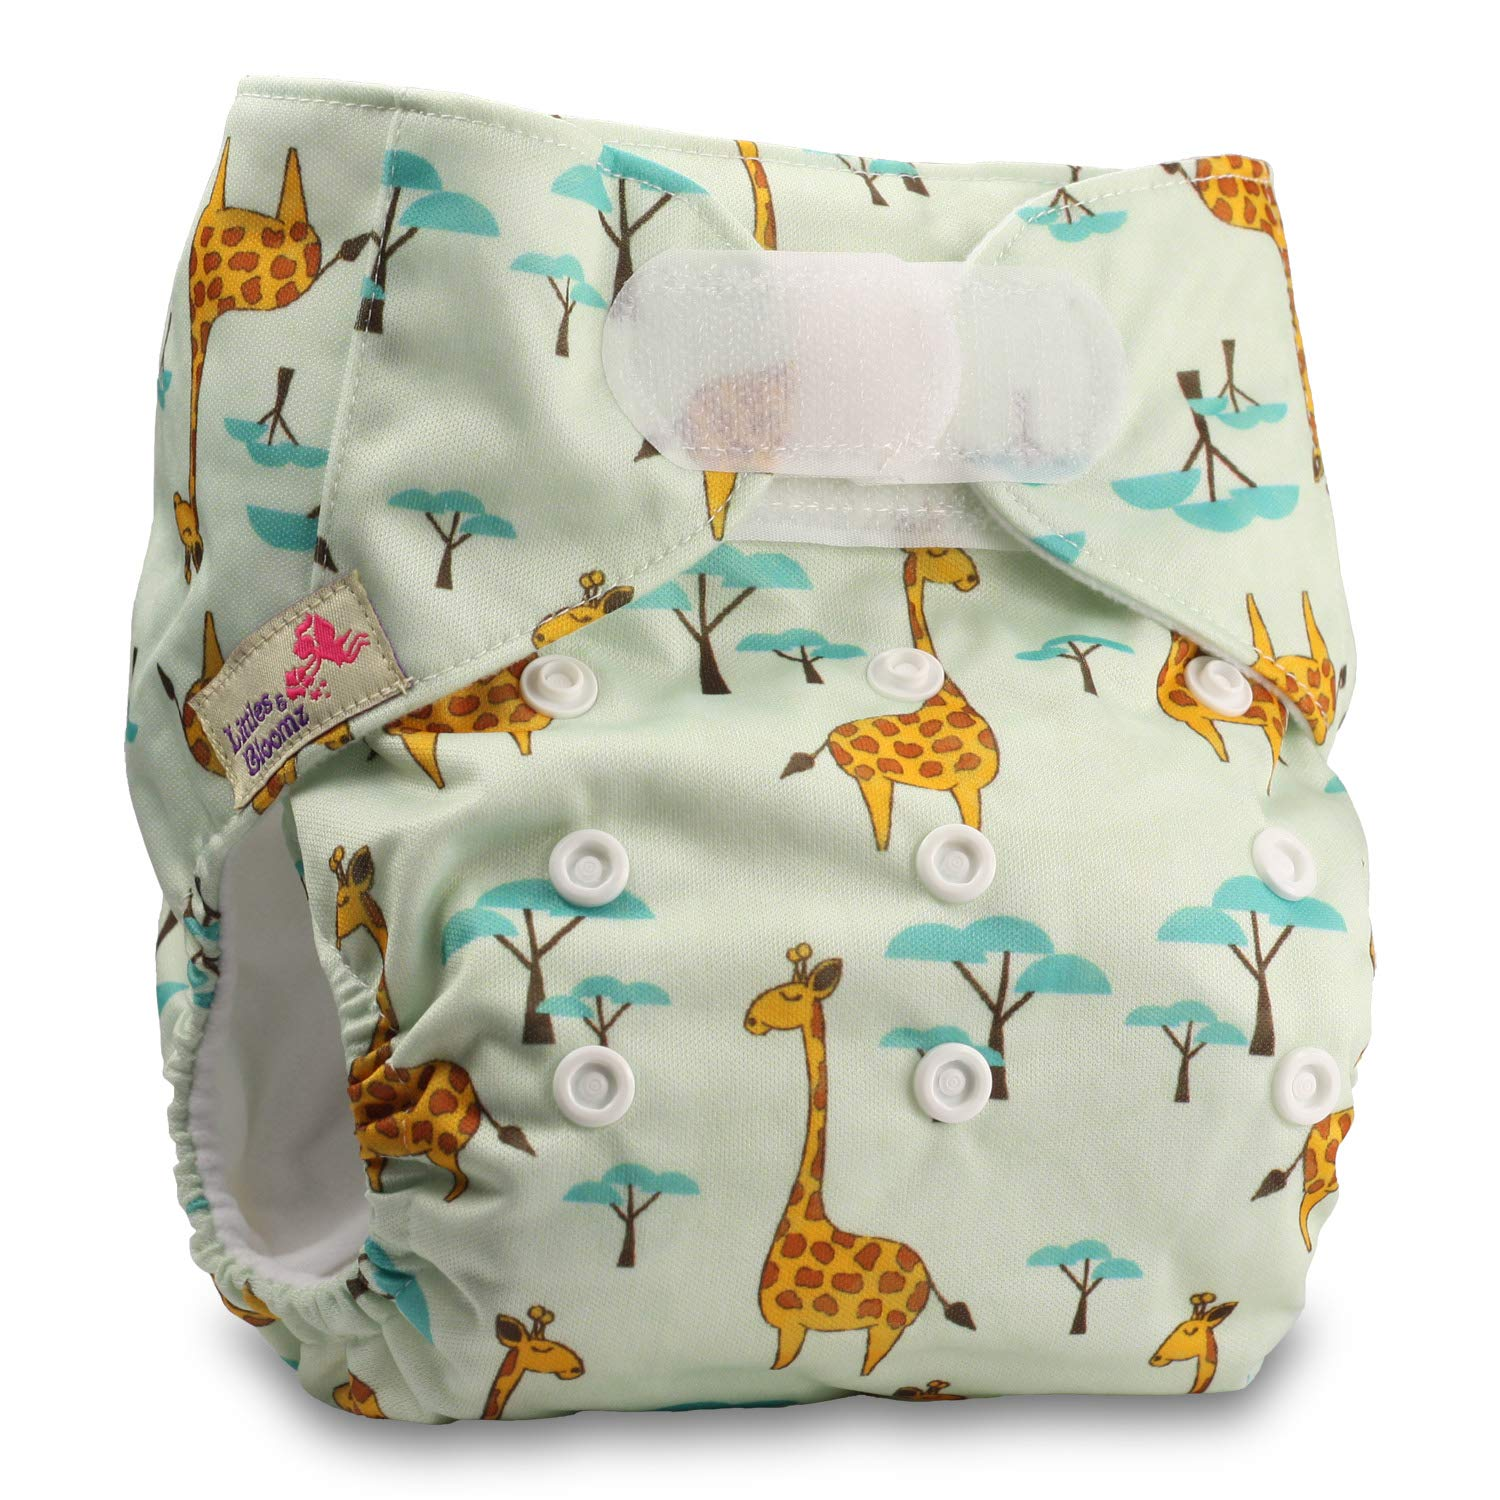 with 2 Microfibre Inserts Set of 1 Fastener: Hook-Loop Littles /& Bloomz Pattern 51 Reusable Pocket Cloth Nappy